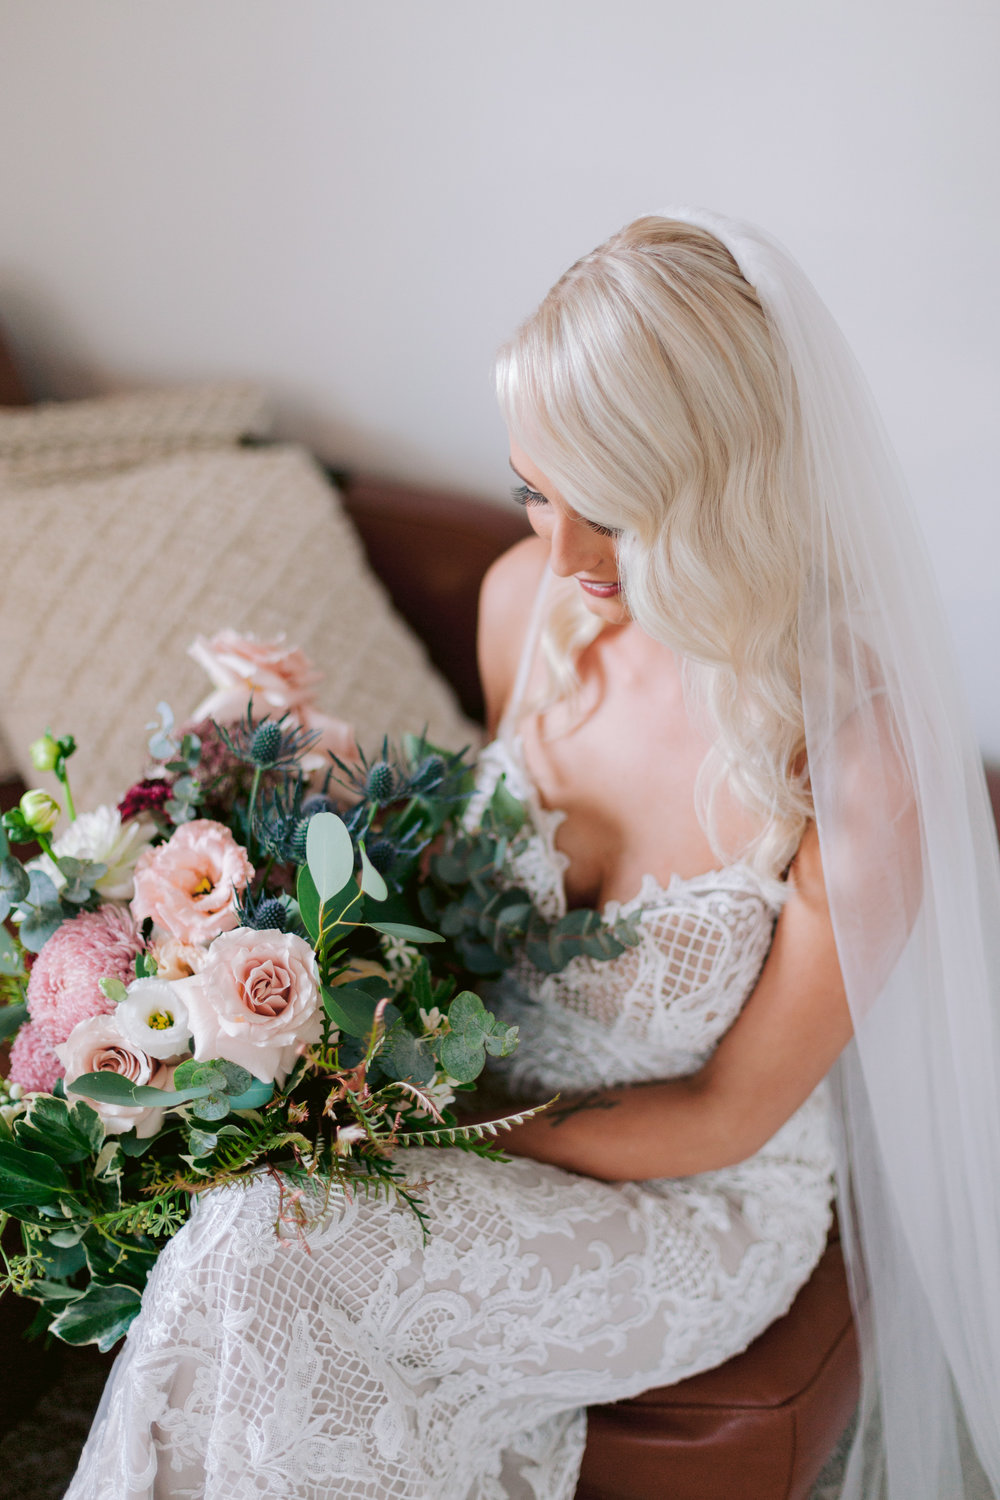 Elopement Collection - $2250 - 3 hours photographic coverageApproximately 250 edited, high-resolution imagesWedding images supplied on our custom USBOnline gallery to share with friends and family* available between Monday and Thursday